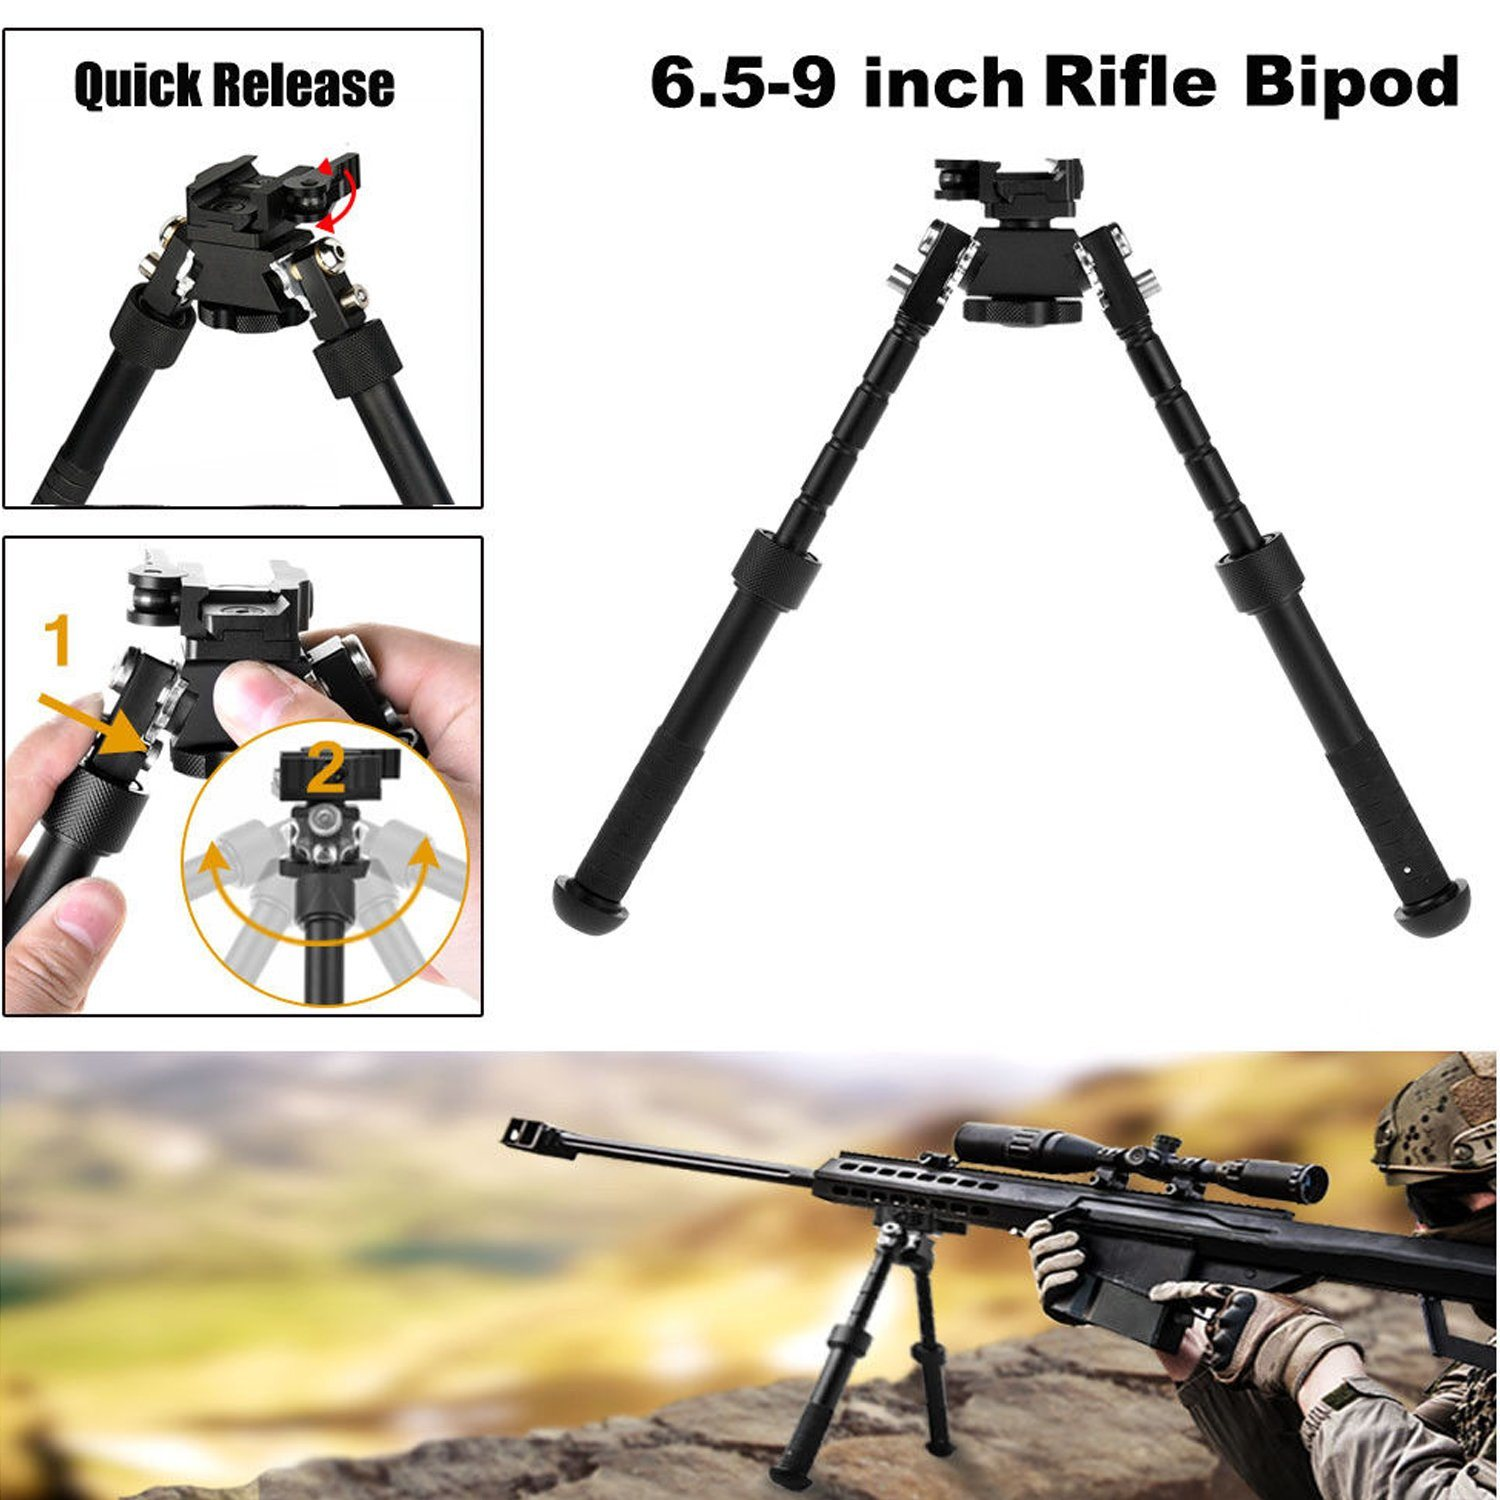 Military Tactical Rotating Swivel Pivot Bipod with Sling Mount for Rifle Air Gun